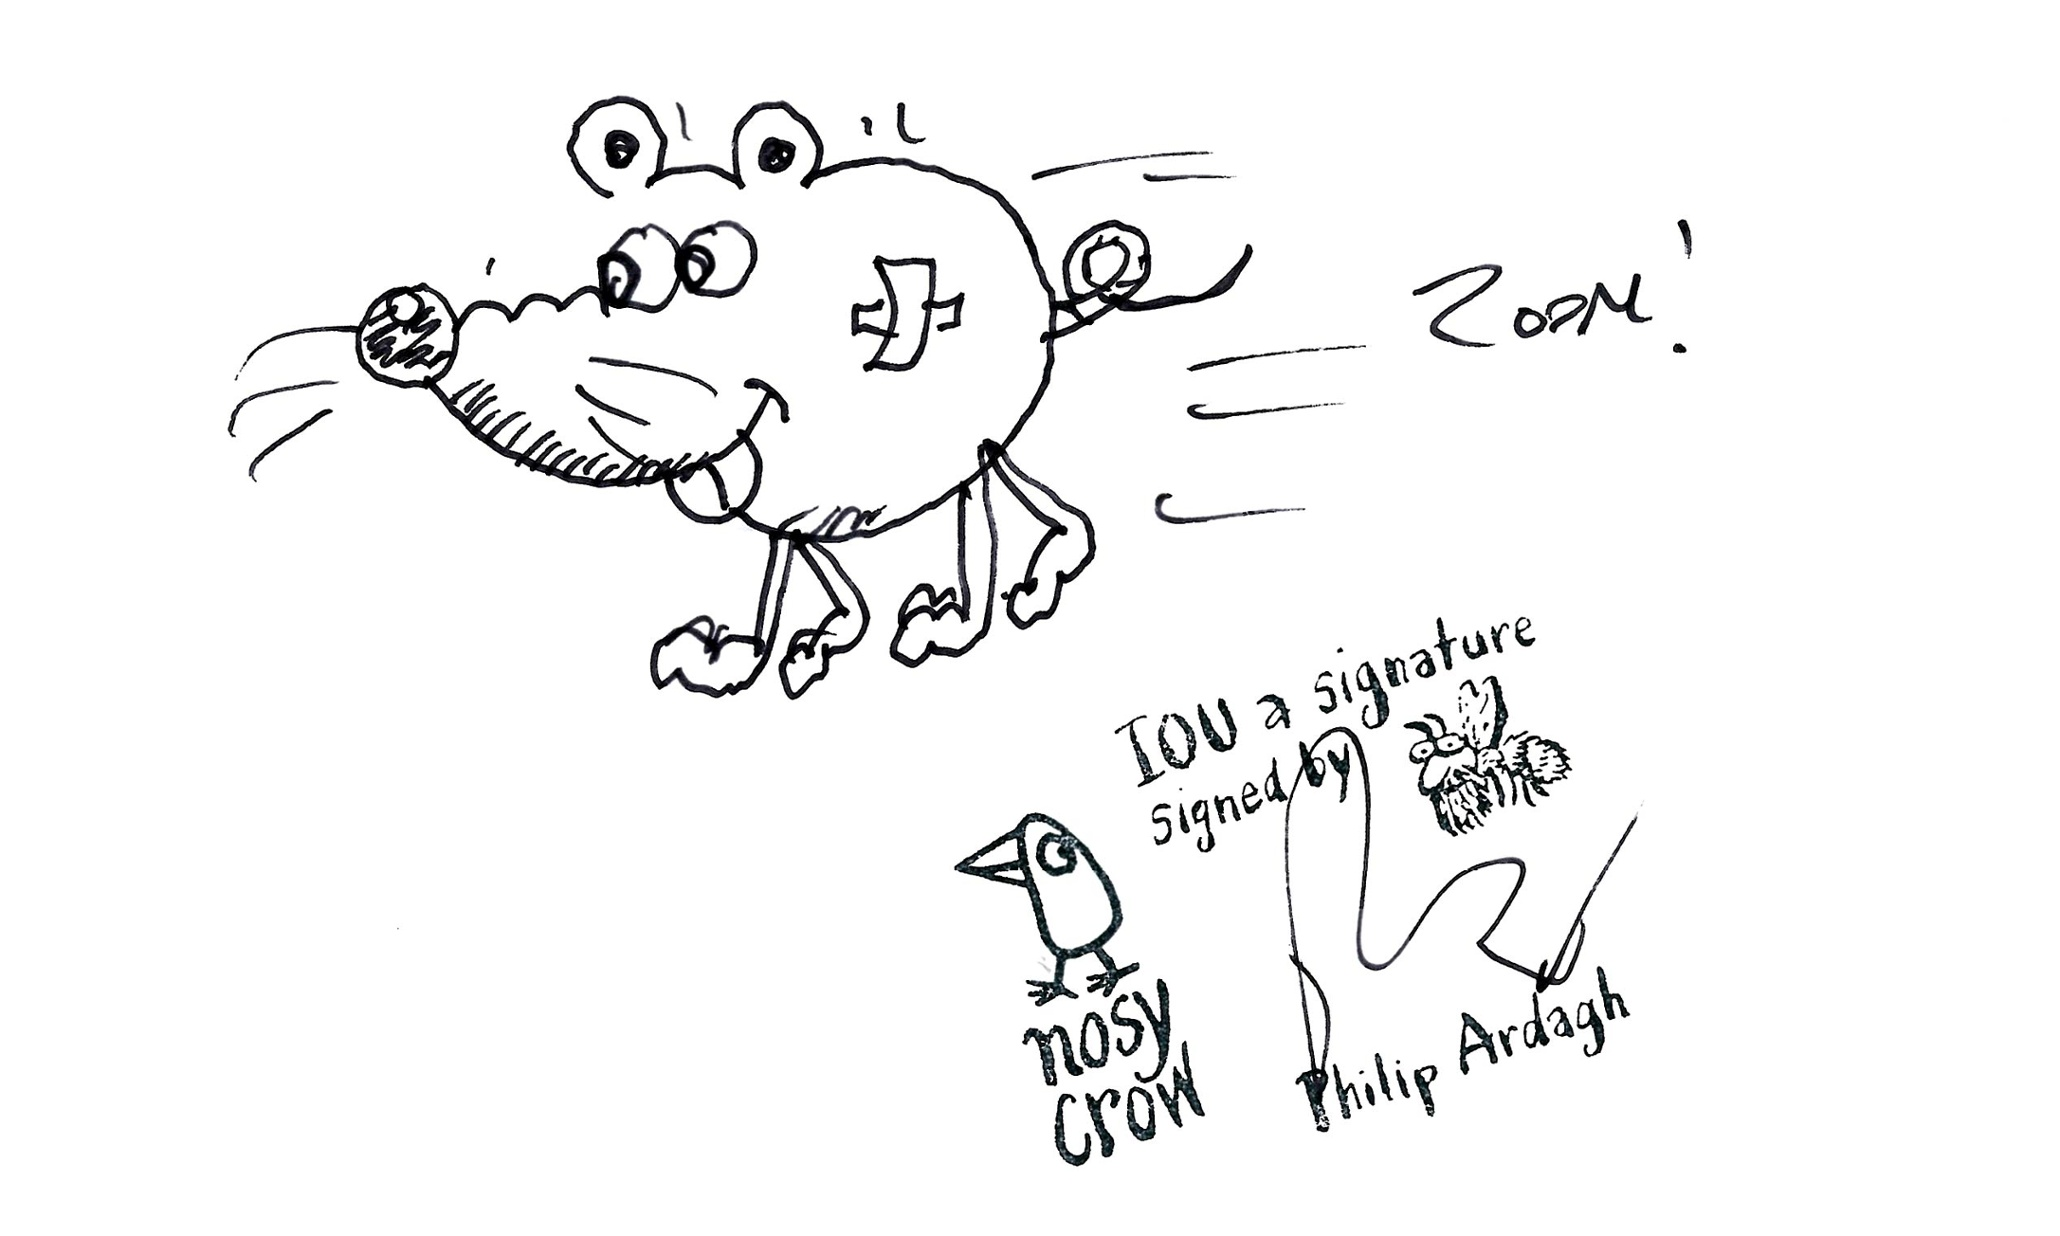 Children's illustrators' doodles: show us your skill and